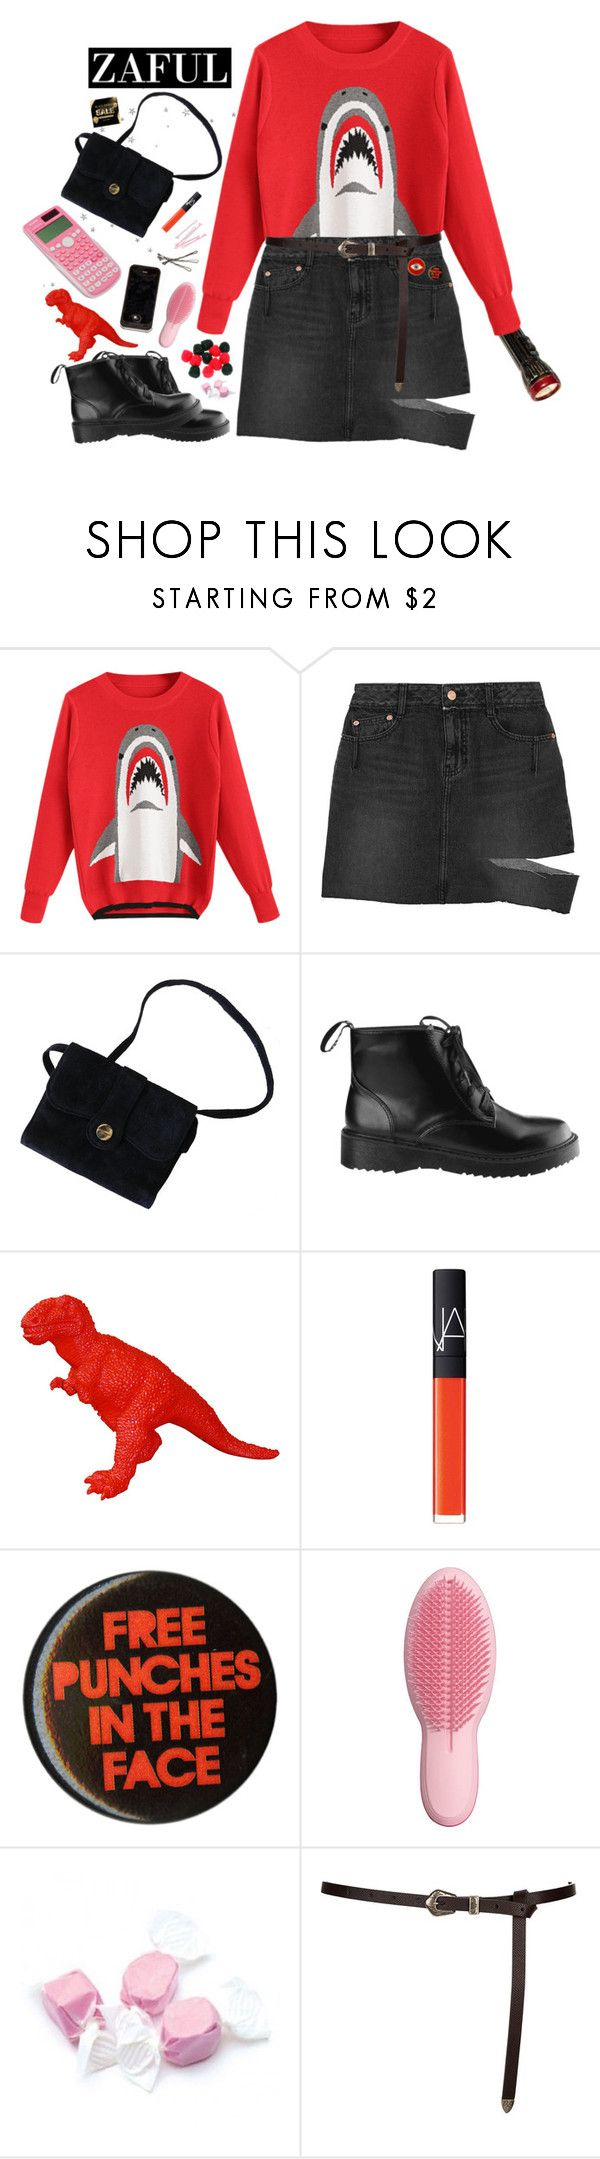 """""""Shark"""" by lsaroskyl ❤ liked on Polyvore featuring SJYP, CO, NARS Cosmetics, BOBBY, Tangle Teezer, Salt Water Sandals and Casio"""